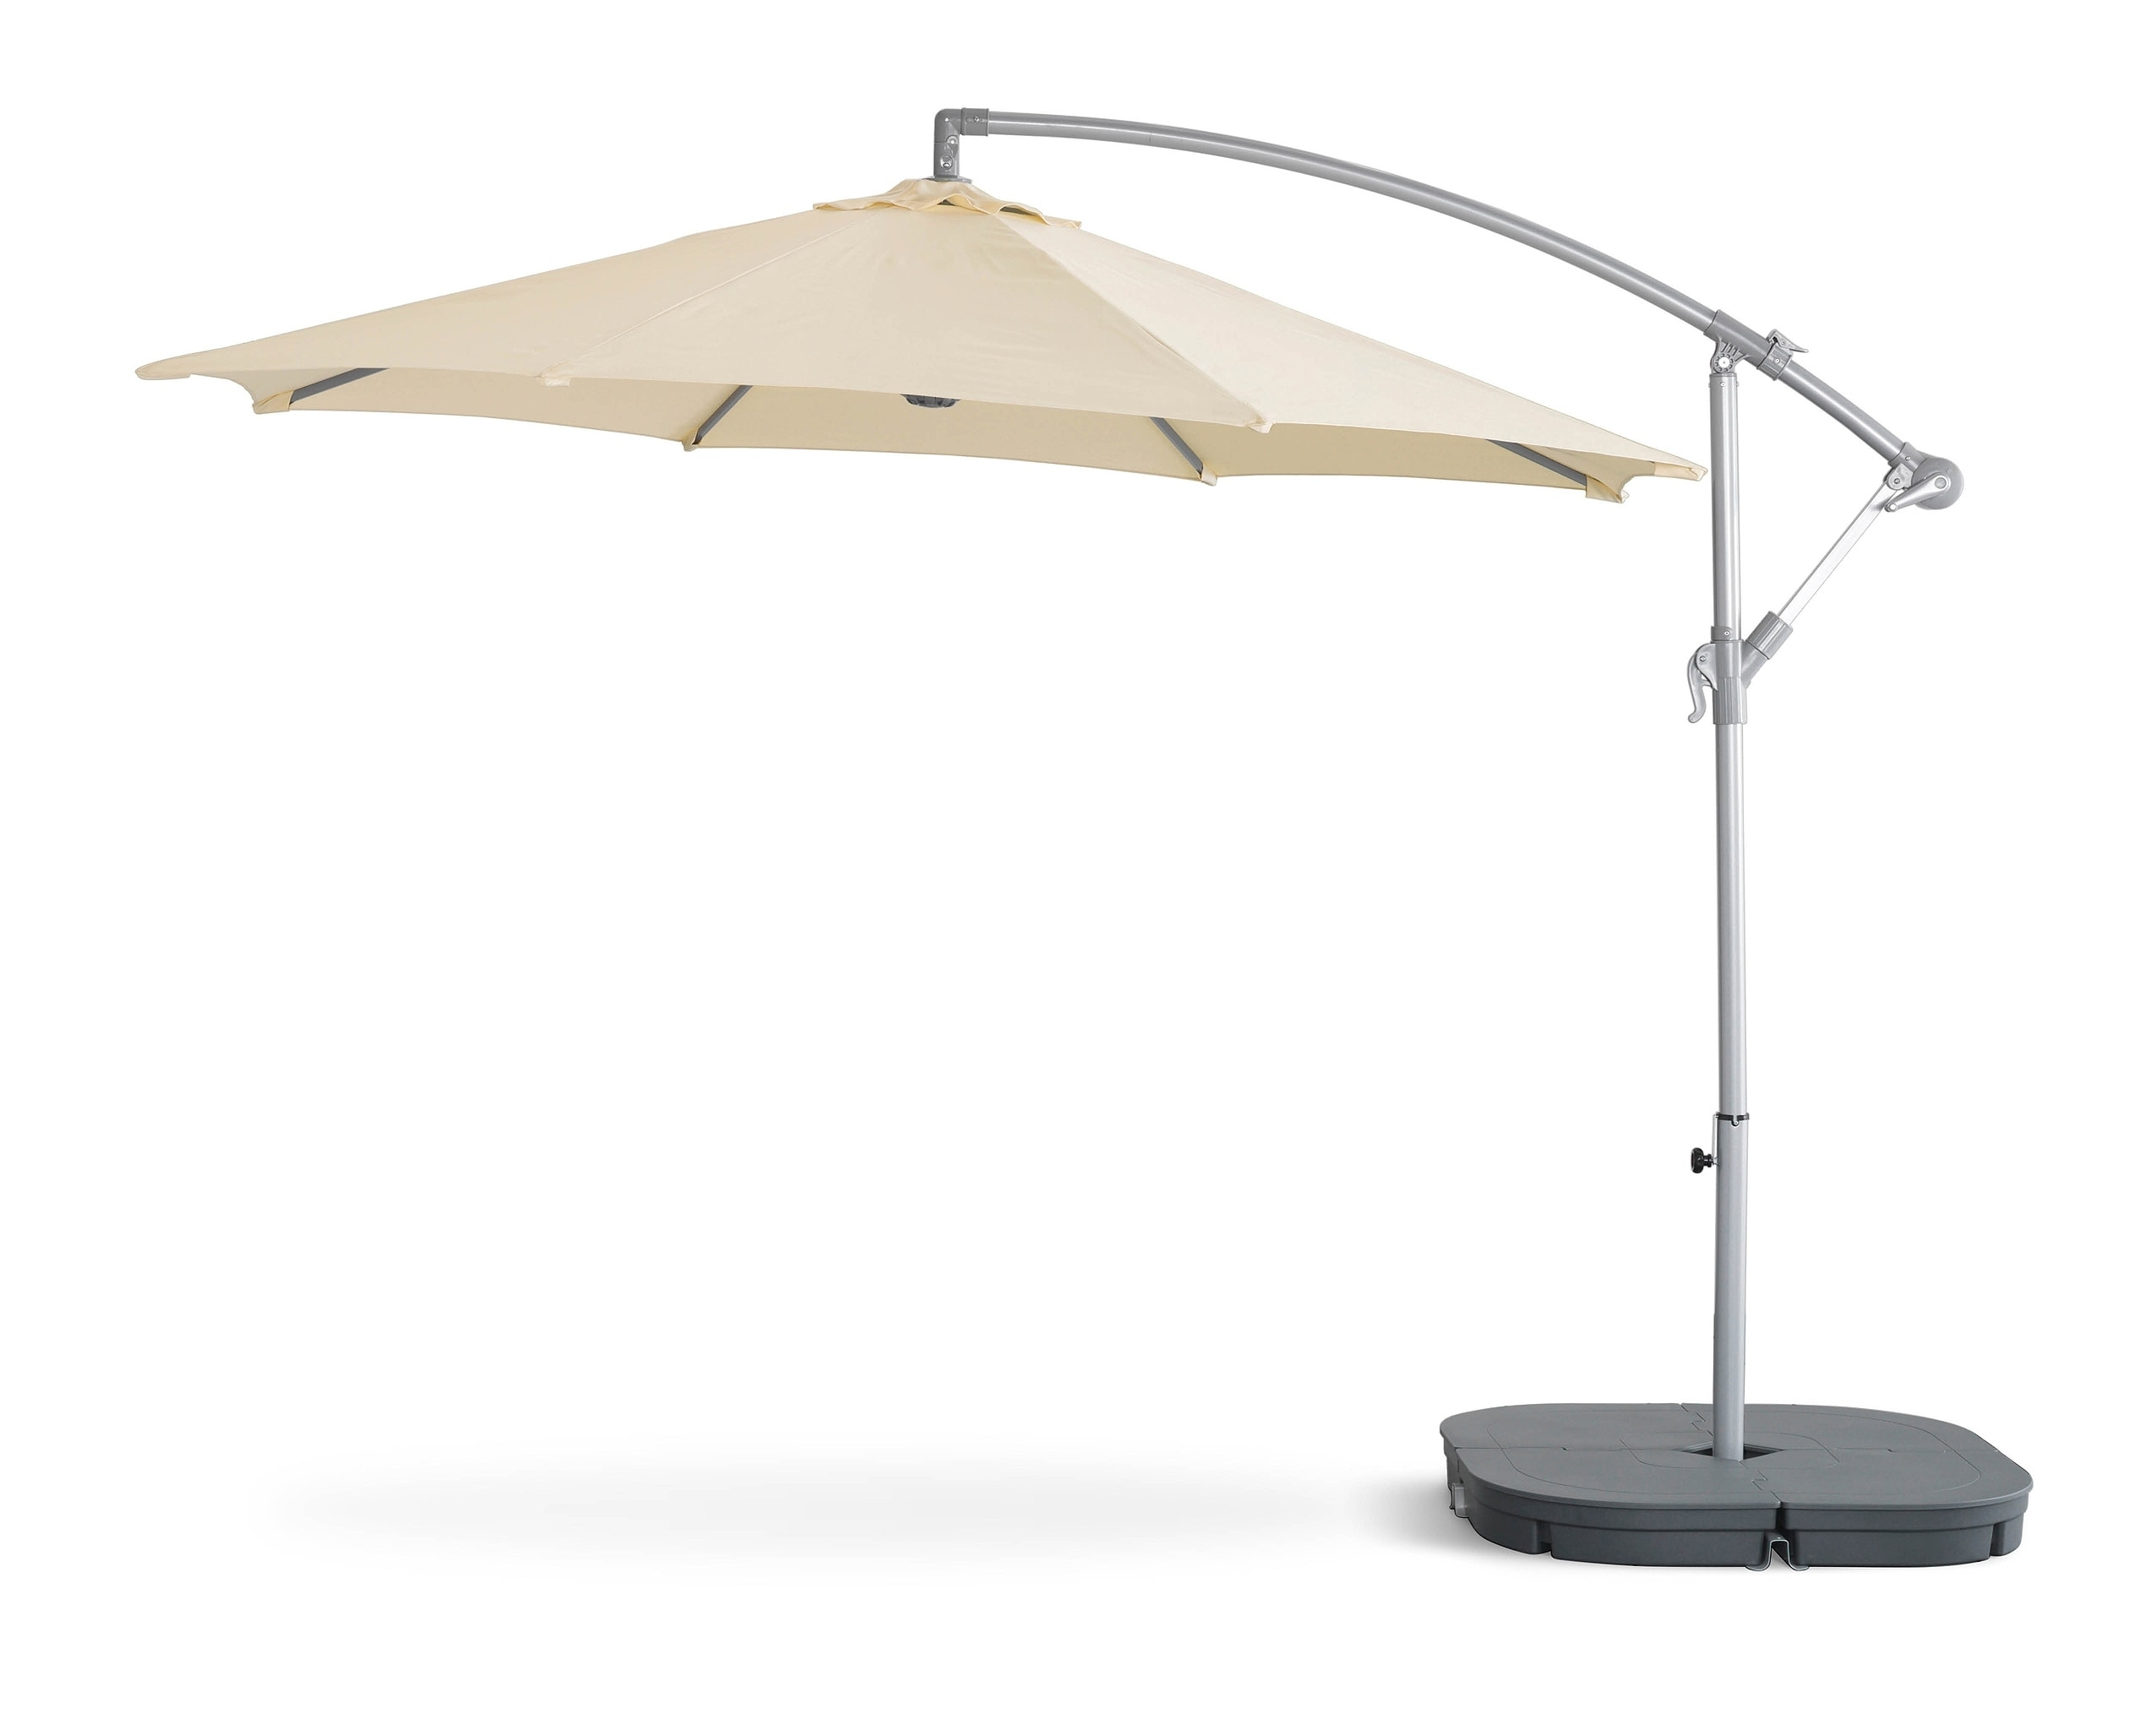 Ikea Patio Umbrellas In 2019 Parasols & Gazebos Ikea (Gallery 7 of 20)